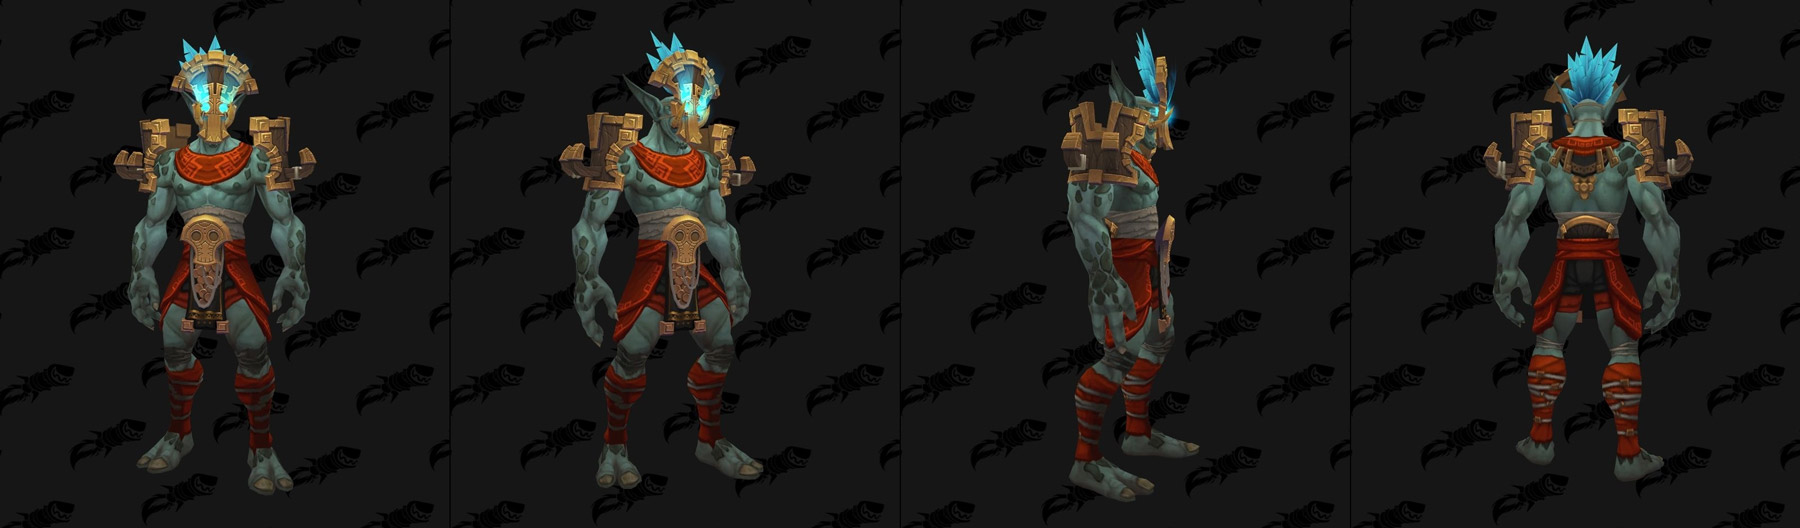 Ensemble héritage incomplet - Modèle masculin - Troll Zandalari - Battle for Azeroth